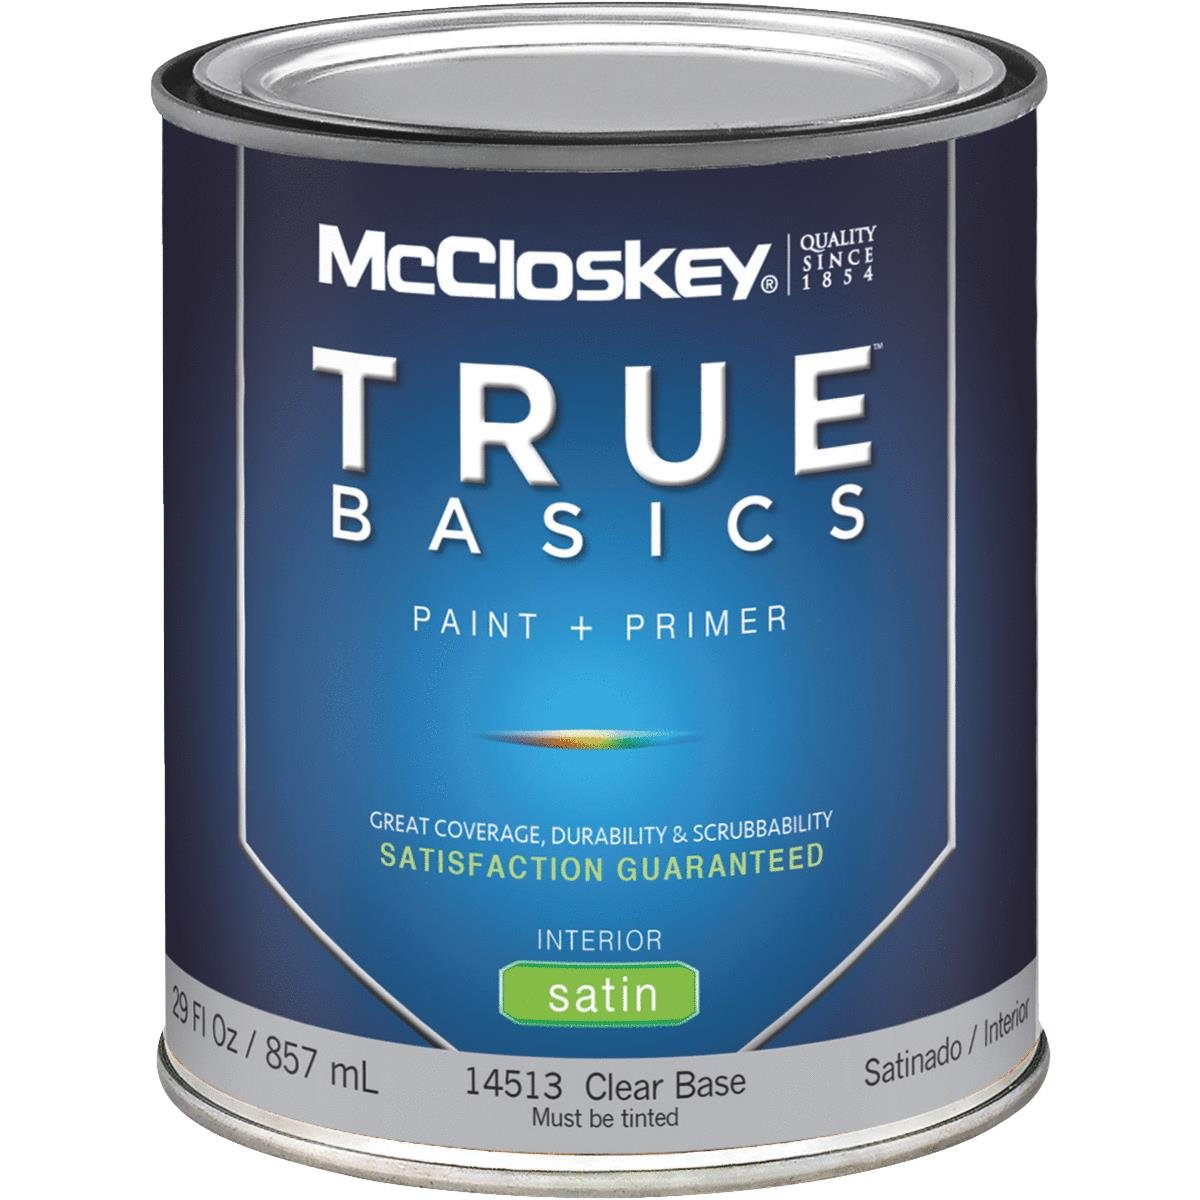 McCloskey True Basics Latex Paint & Primer Satin Interior Wall Paint